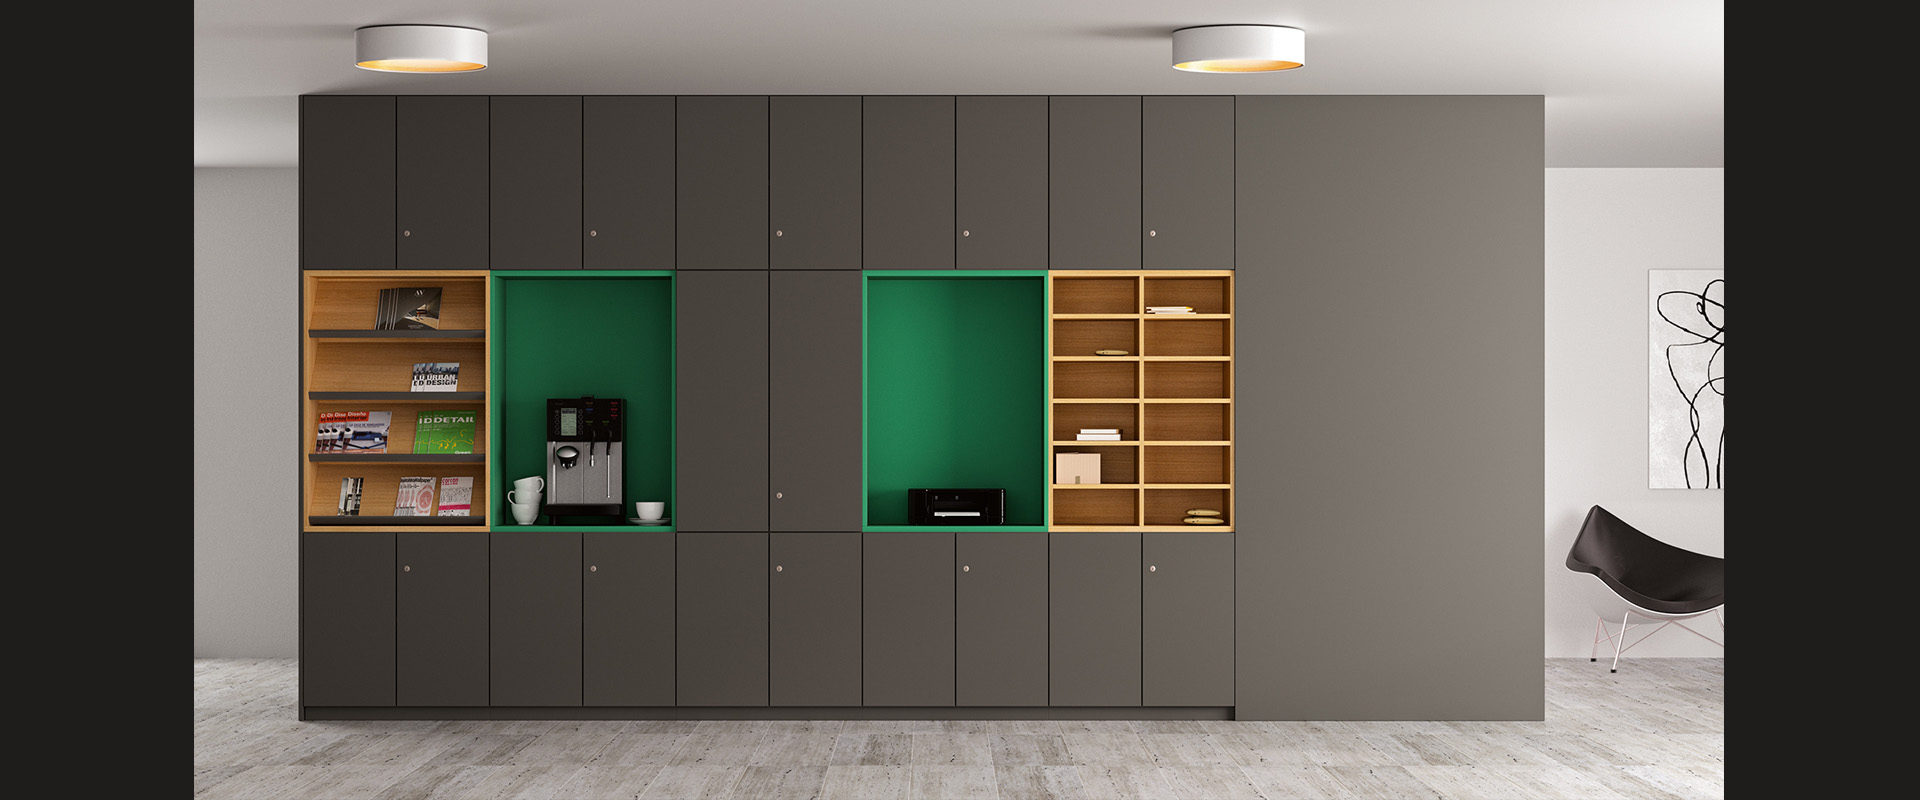 Office cupboards basic S